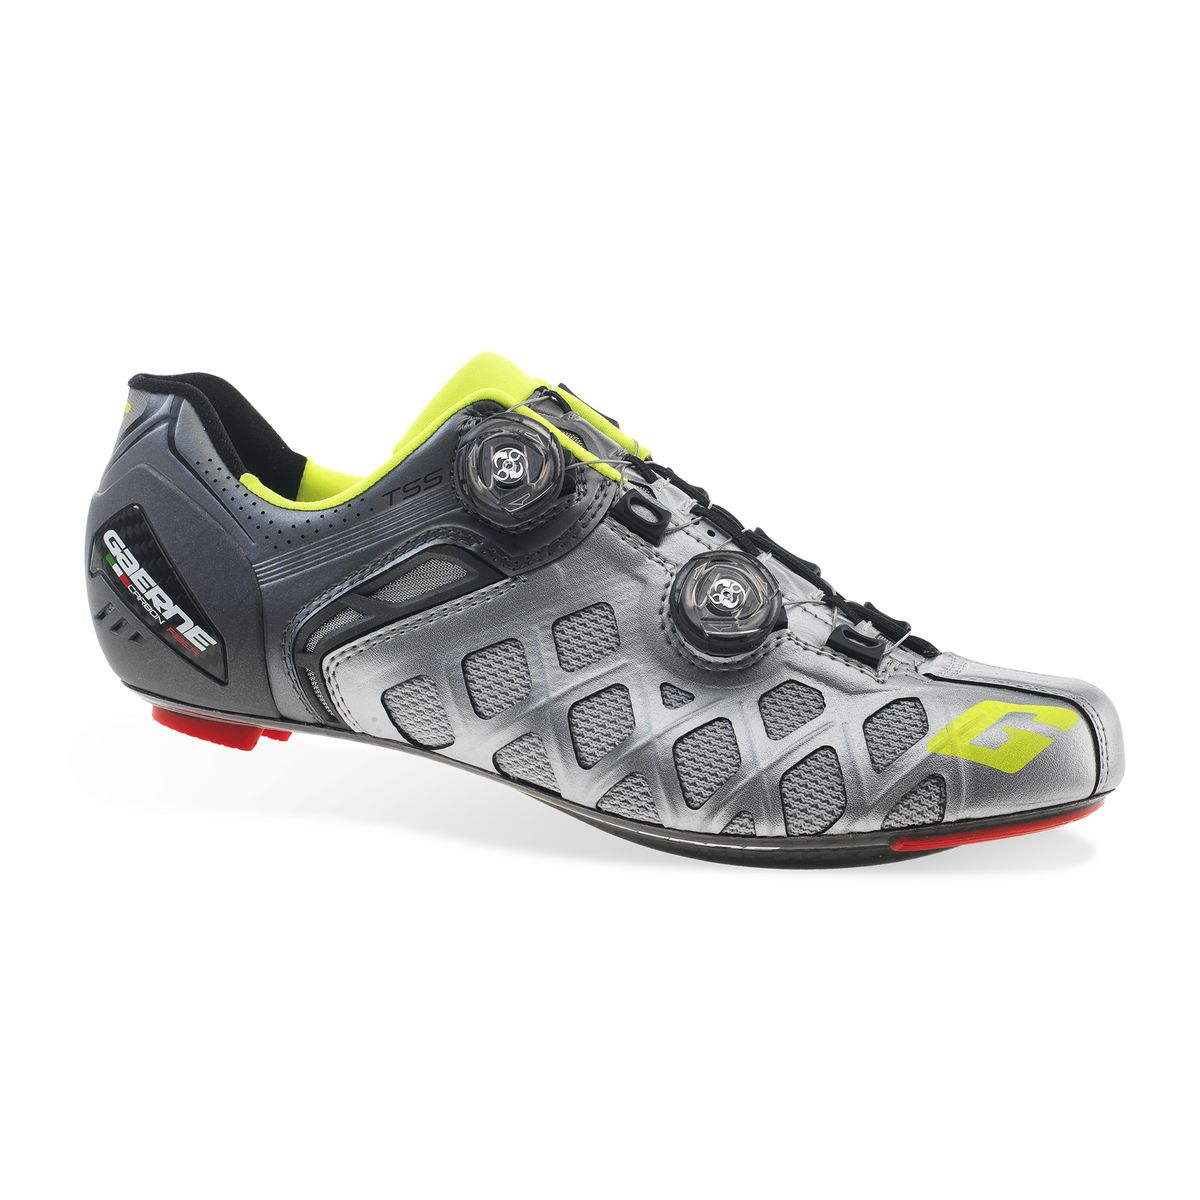 GAERNE CARBON G.STILO+ SUMMER road shoes | Shoes and overlays